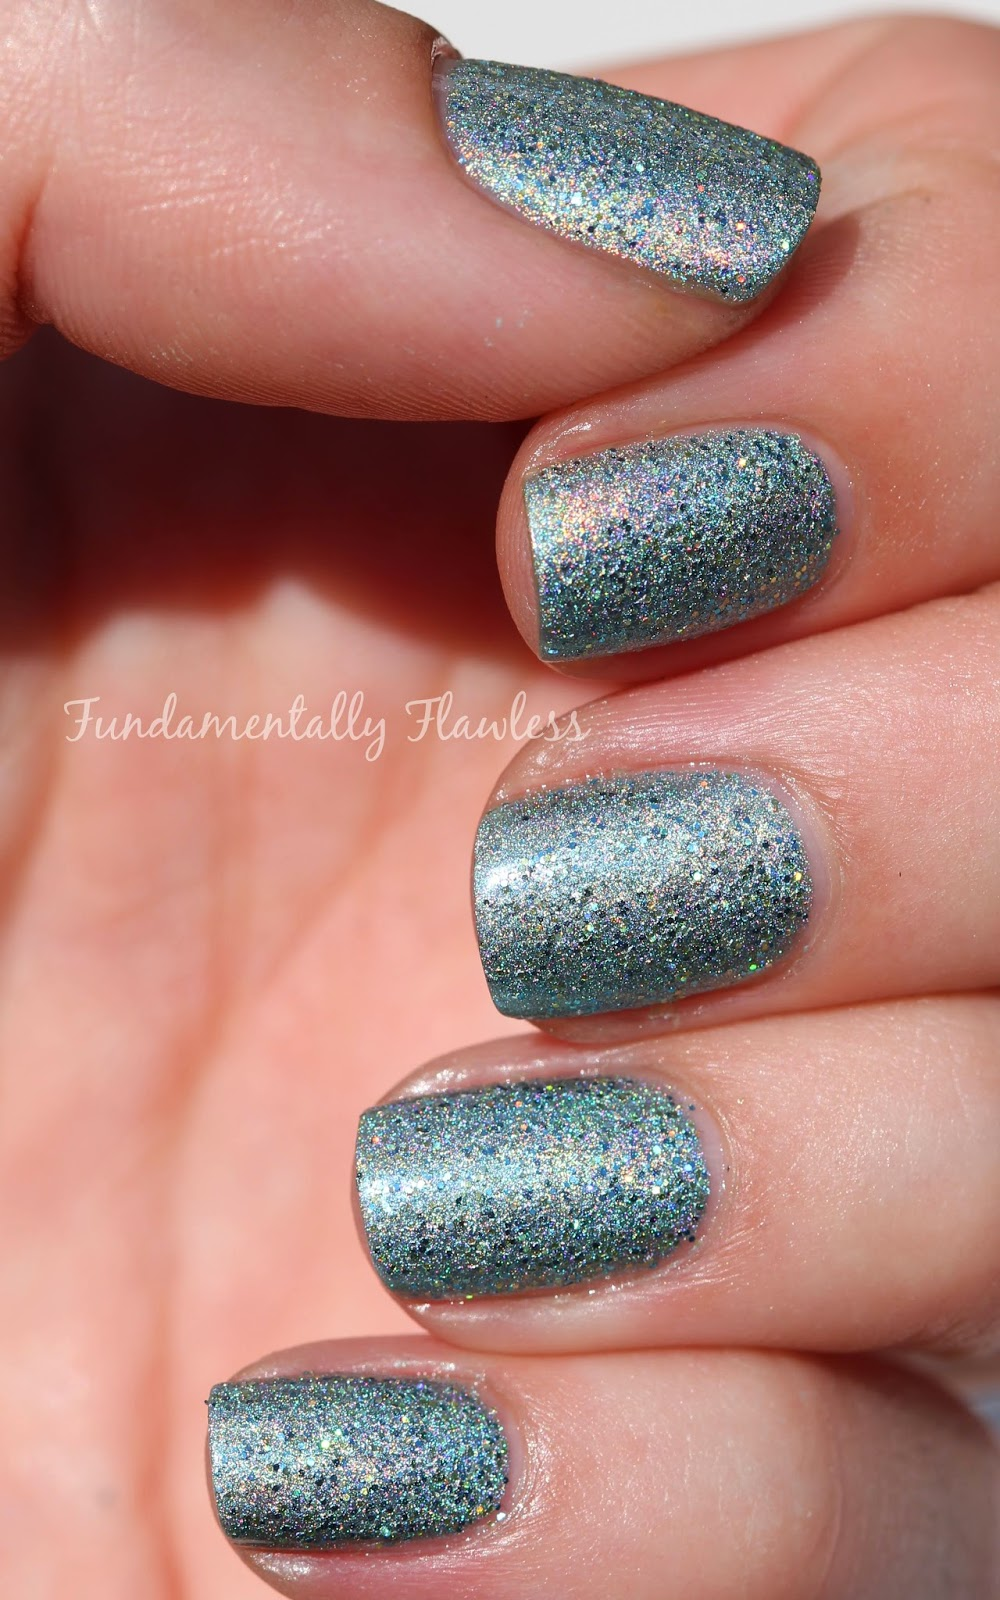 Tami Beauty Lady of Lomond swatch